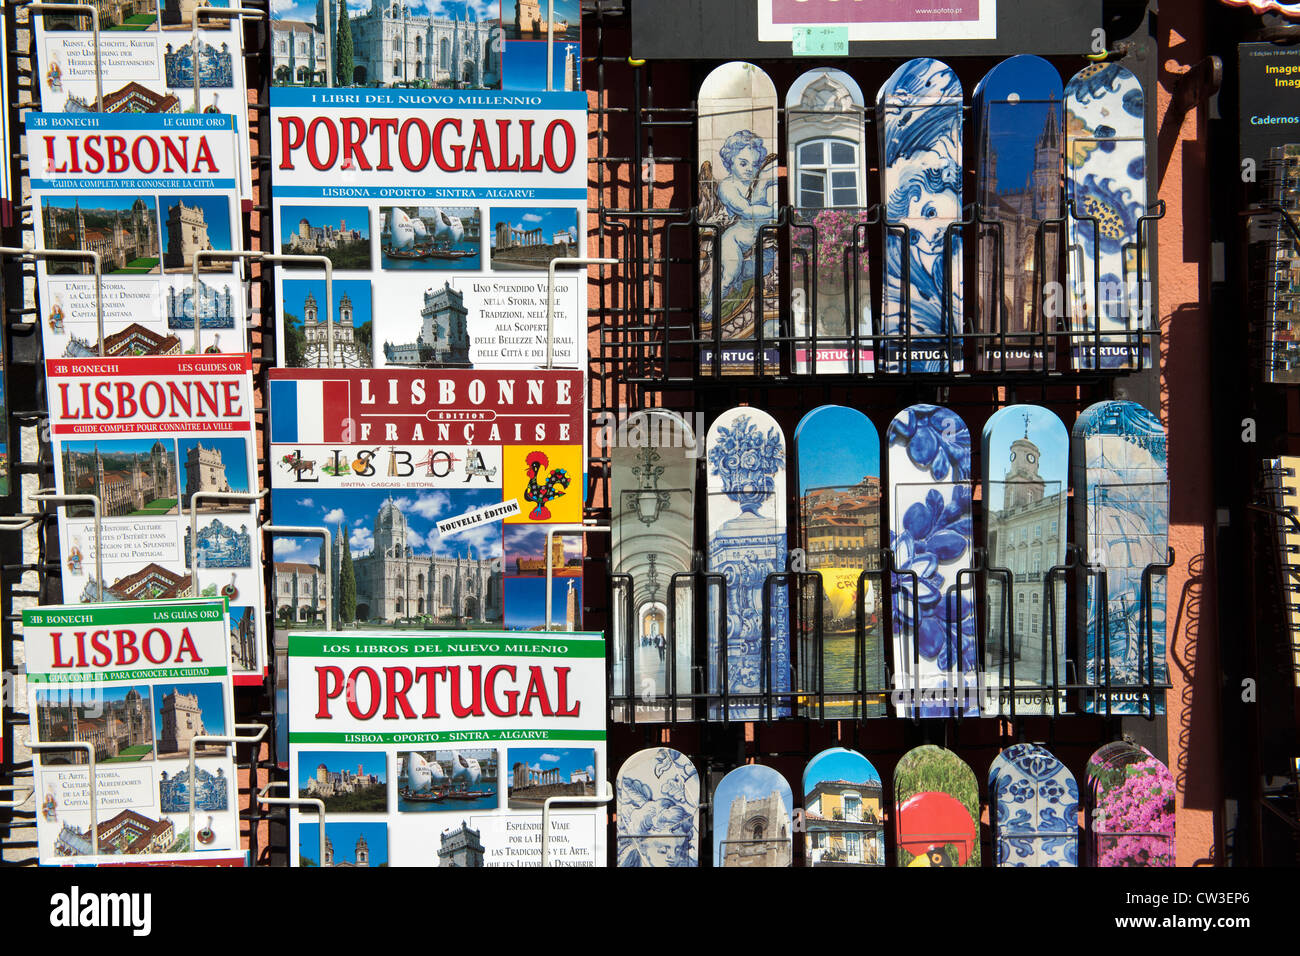 Guide books and book markers on display at tourist shop, Lisbon, Portugal. - Stock Image